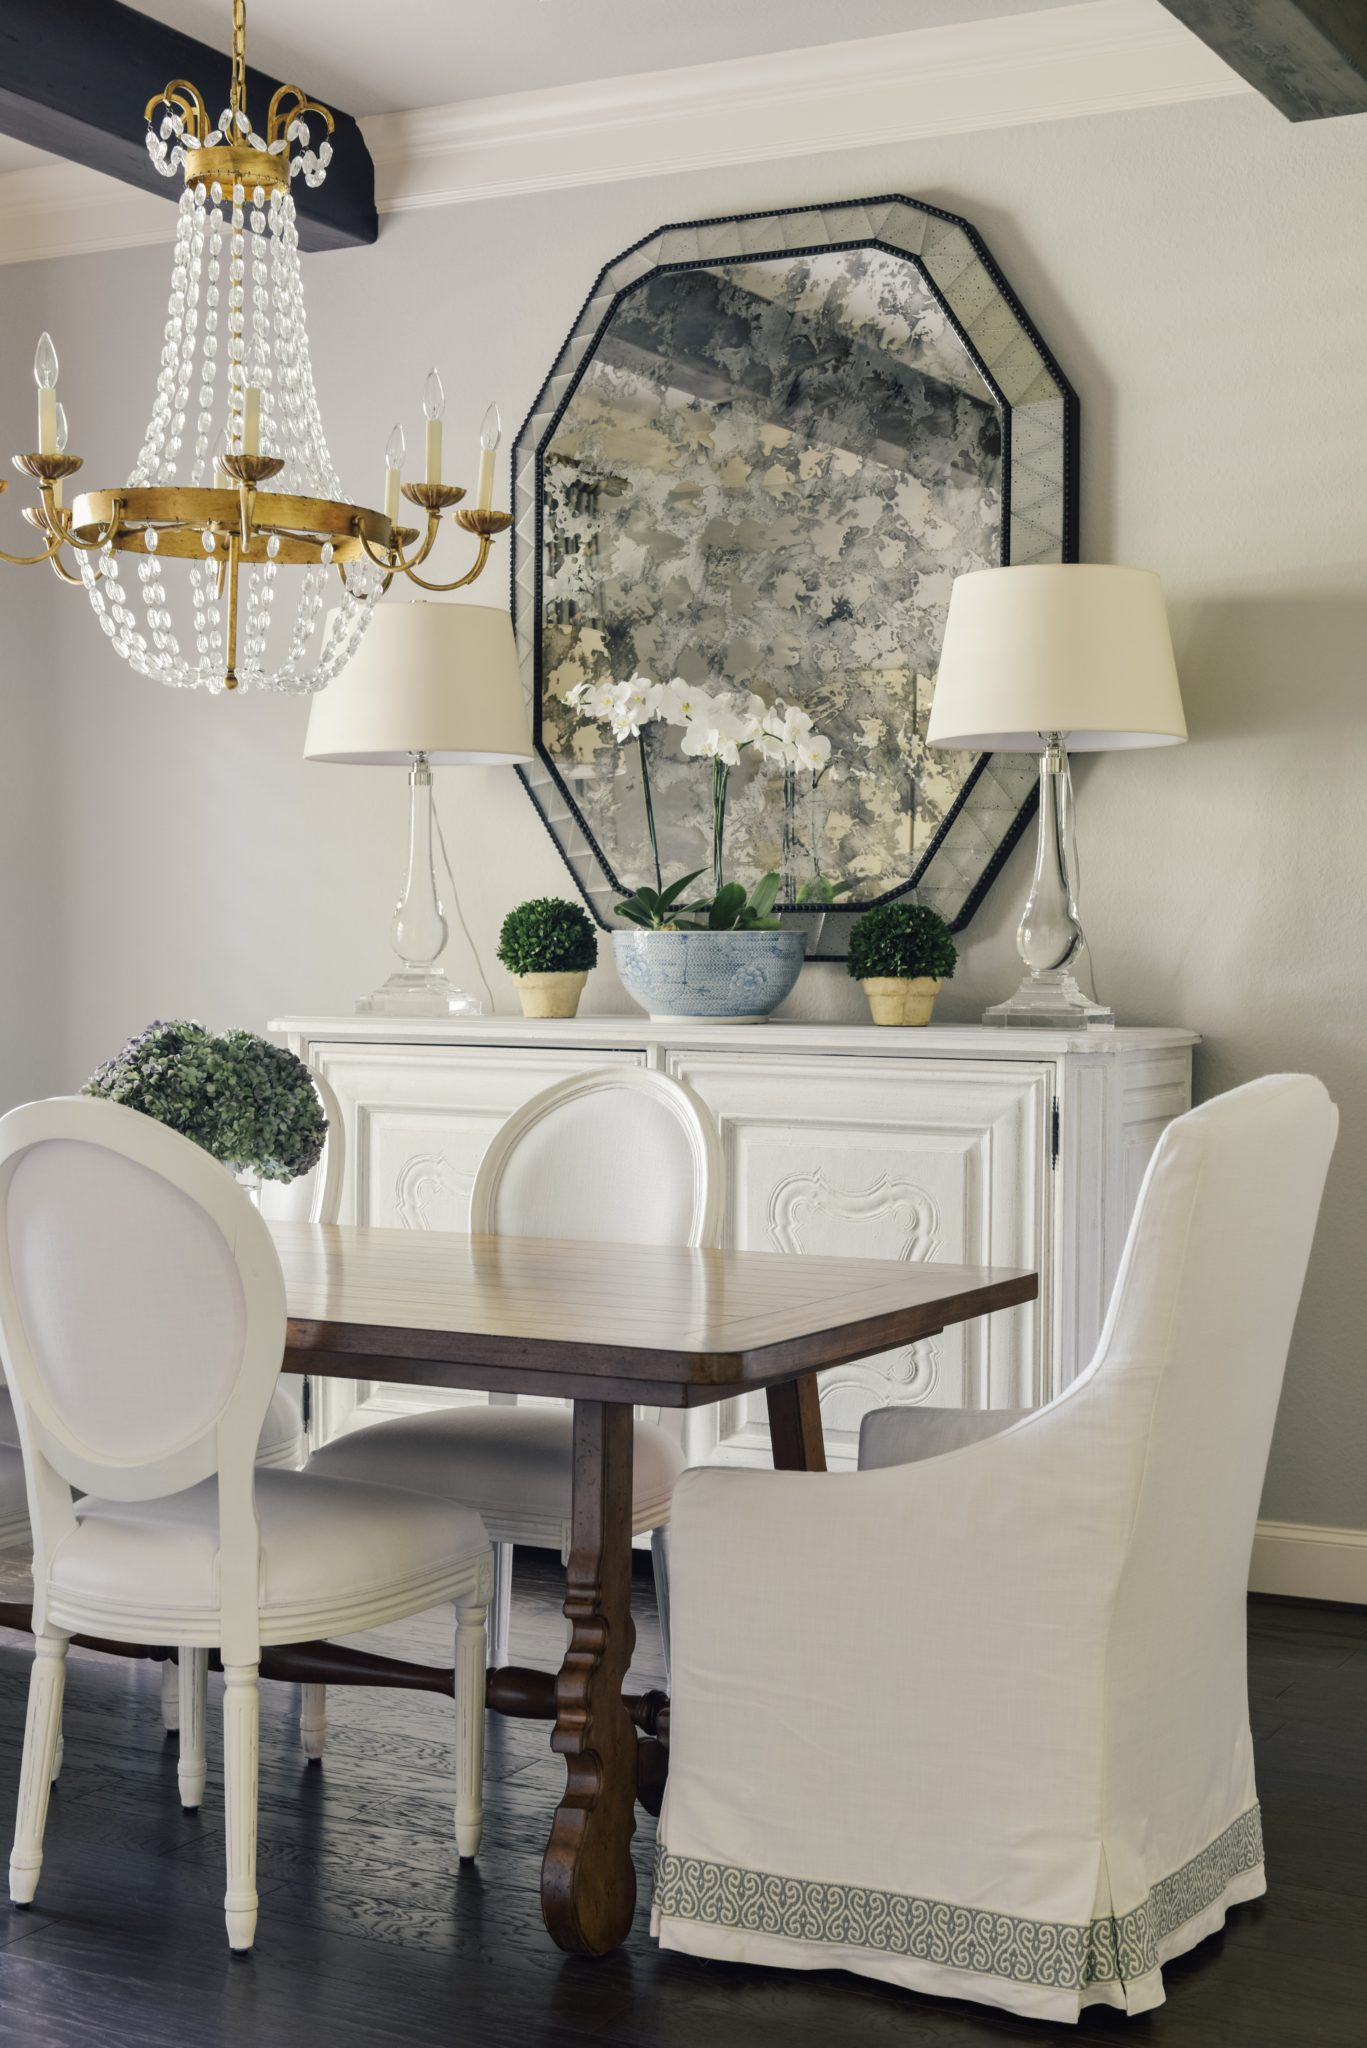 Houston Dining Room, French Country, Traditional, Antique Mirror, Louis Chairs by Paloma Contreras Design